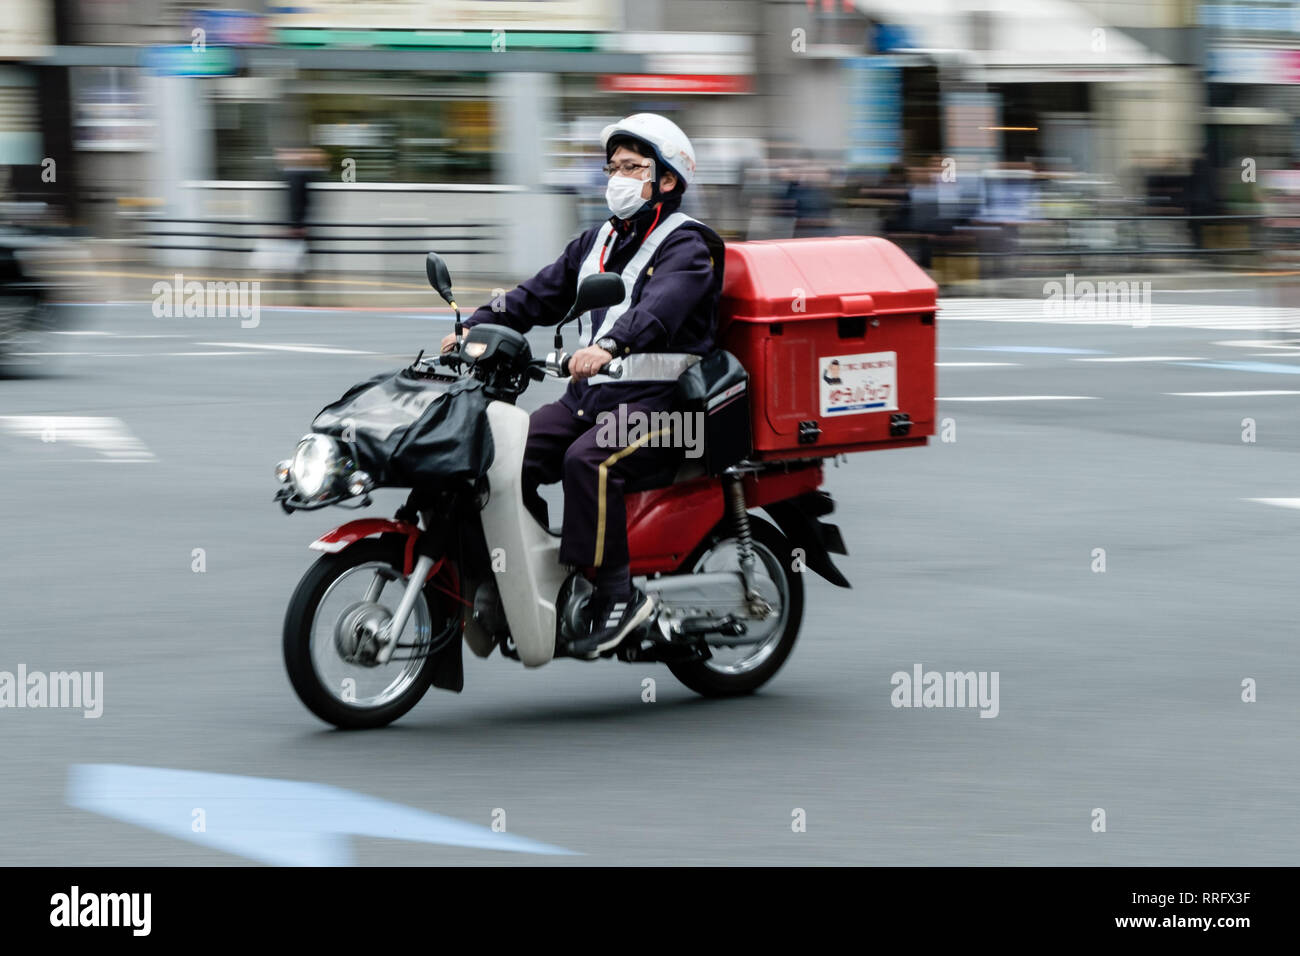 February 26, 2019 - Tokyo, Japan - A postman wears a mask and rides on the motorcycle during the hay fever season in Japan. Every year many Japanese suffering from hay fever during the Spring season. This year the hay fever season arrived early in Tokyo and 14 prefectures including the entire Kanto region. (Credit Image: © Keith Tsuji/ZUMA Wire) - Stock Image